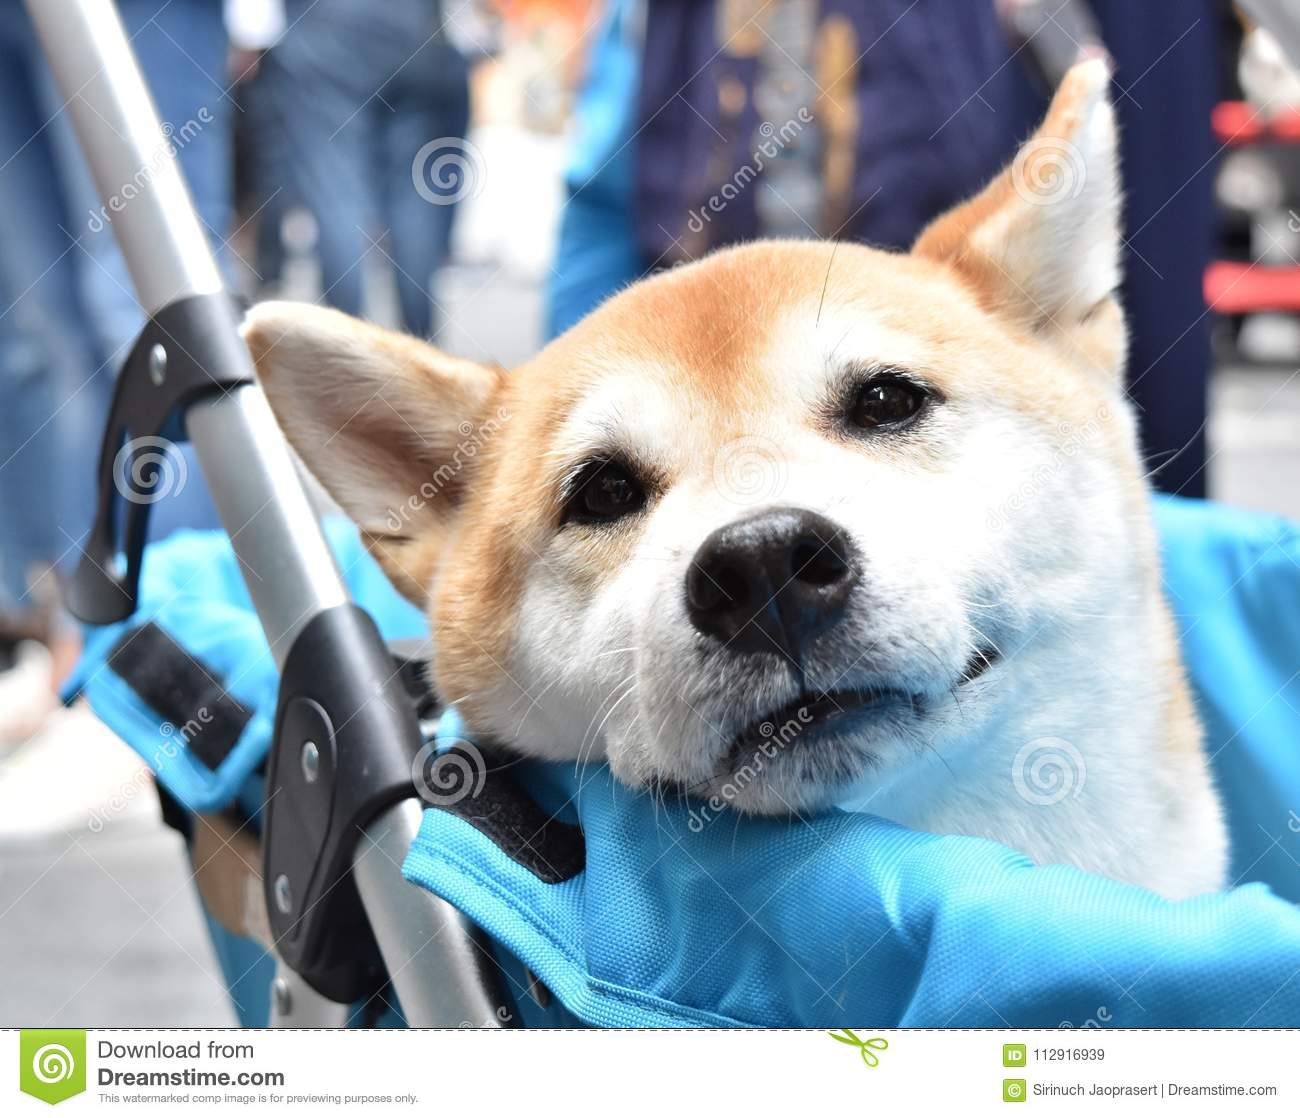 Shiba Inu Japanese dog is sitting in baby carriage, smiling softly